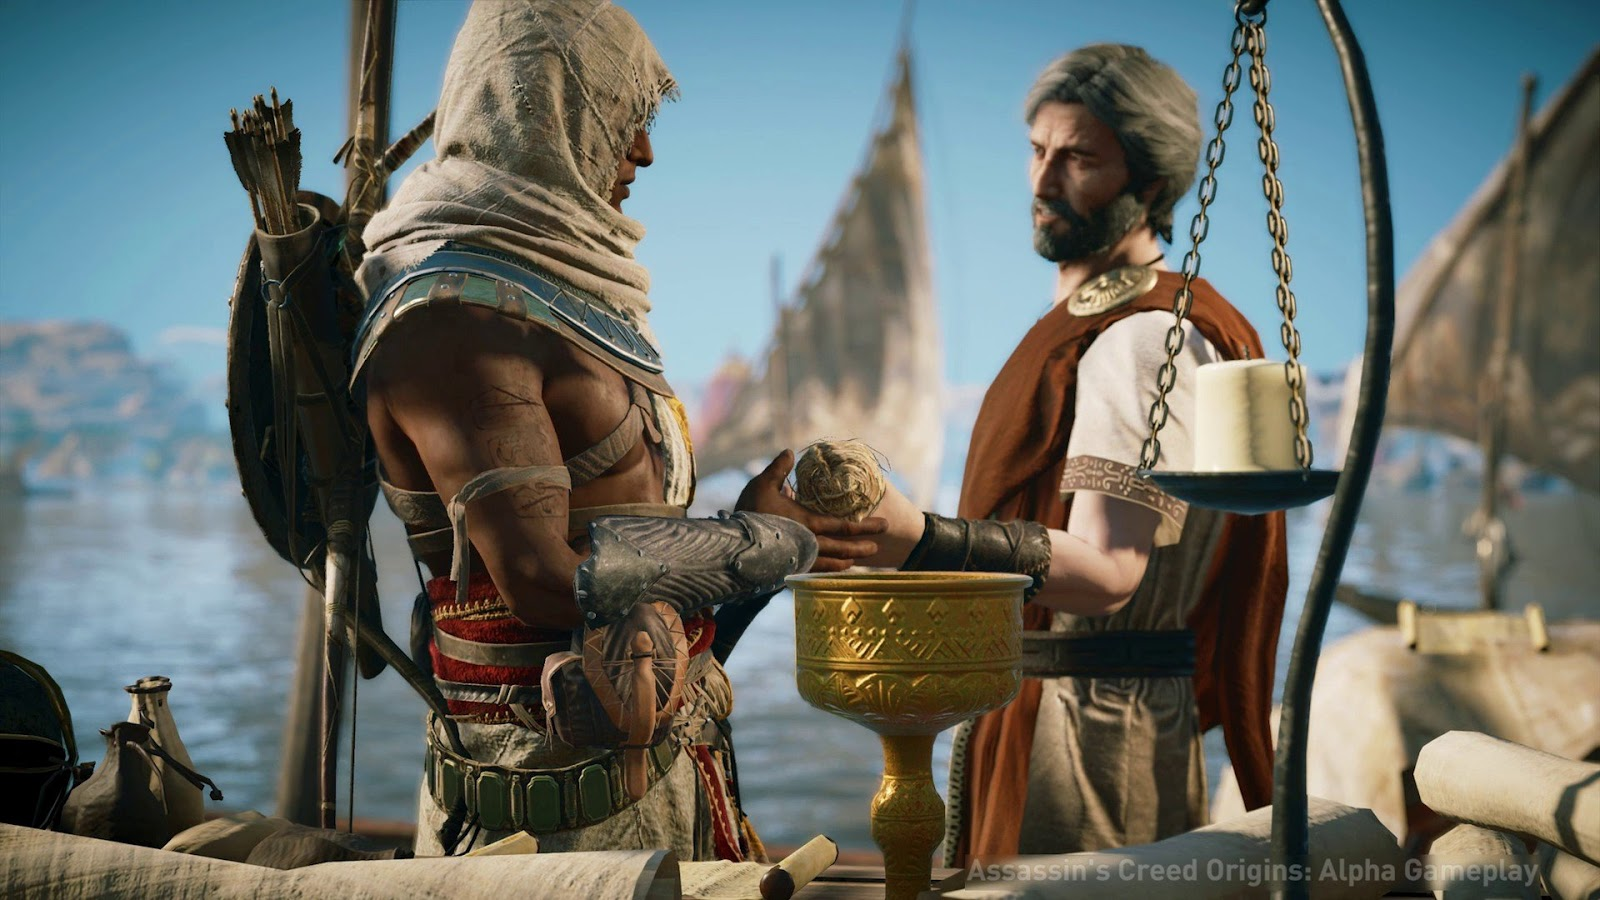 Ubisoft Announces Creation Of Assassin S Creed Origins Limited